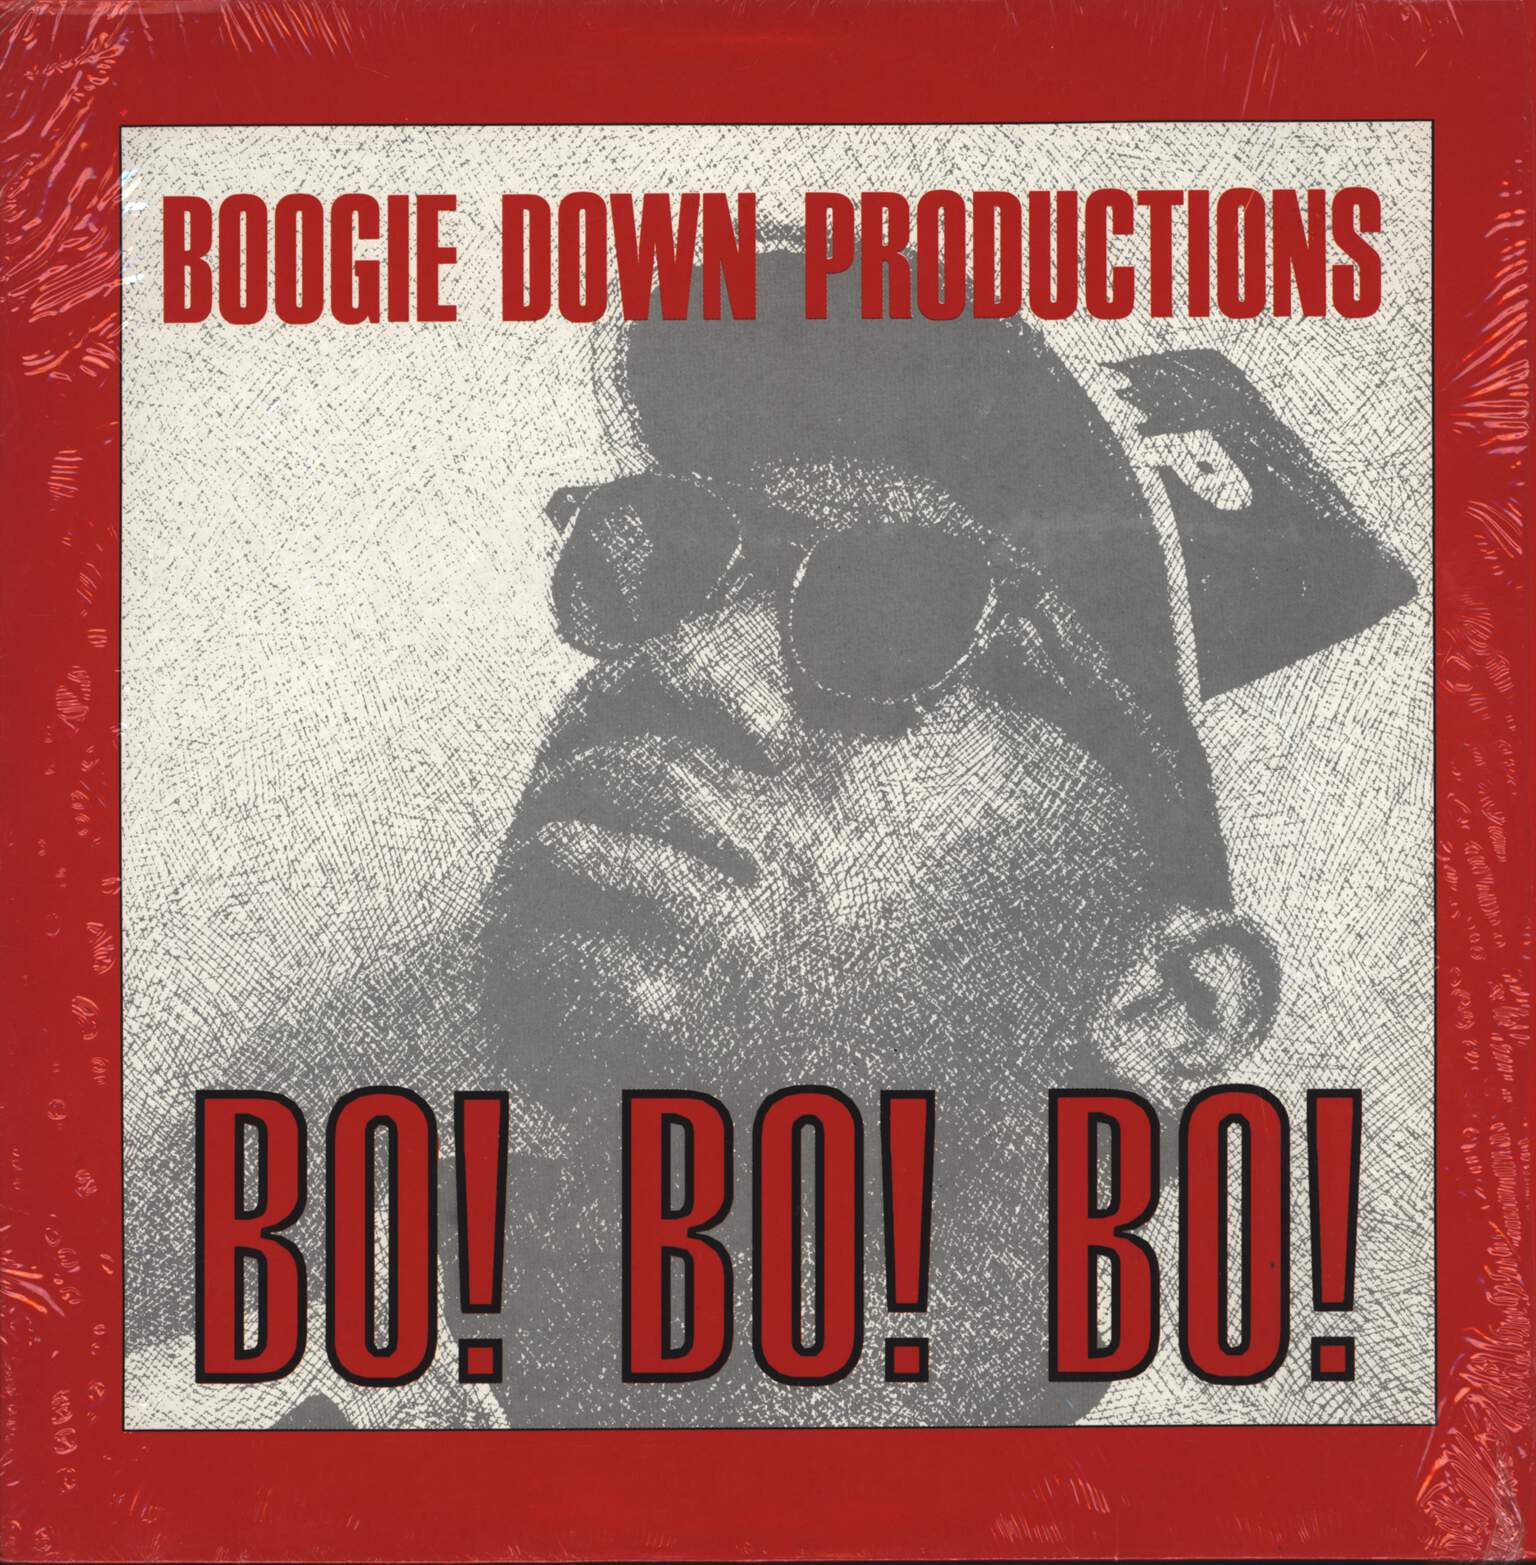 "Boogie Down Productions: Bo! Bo! Bo!, 12"" Maxi Single (Vinyl)"